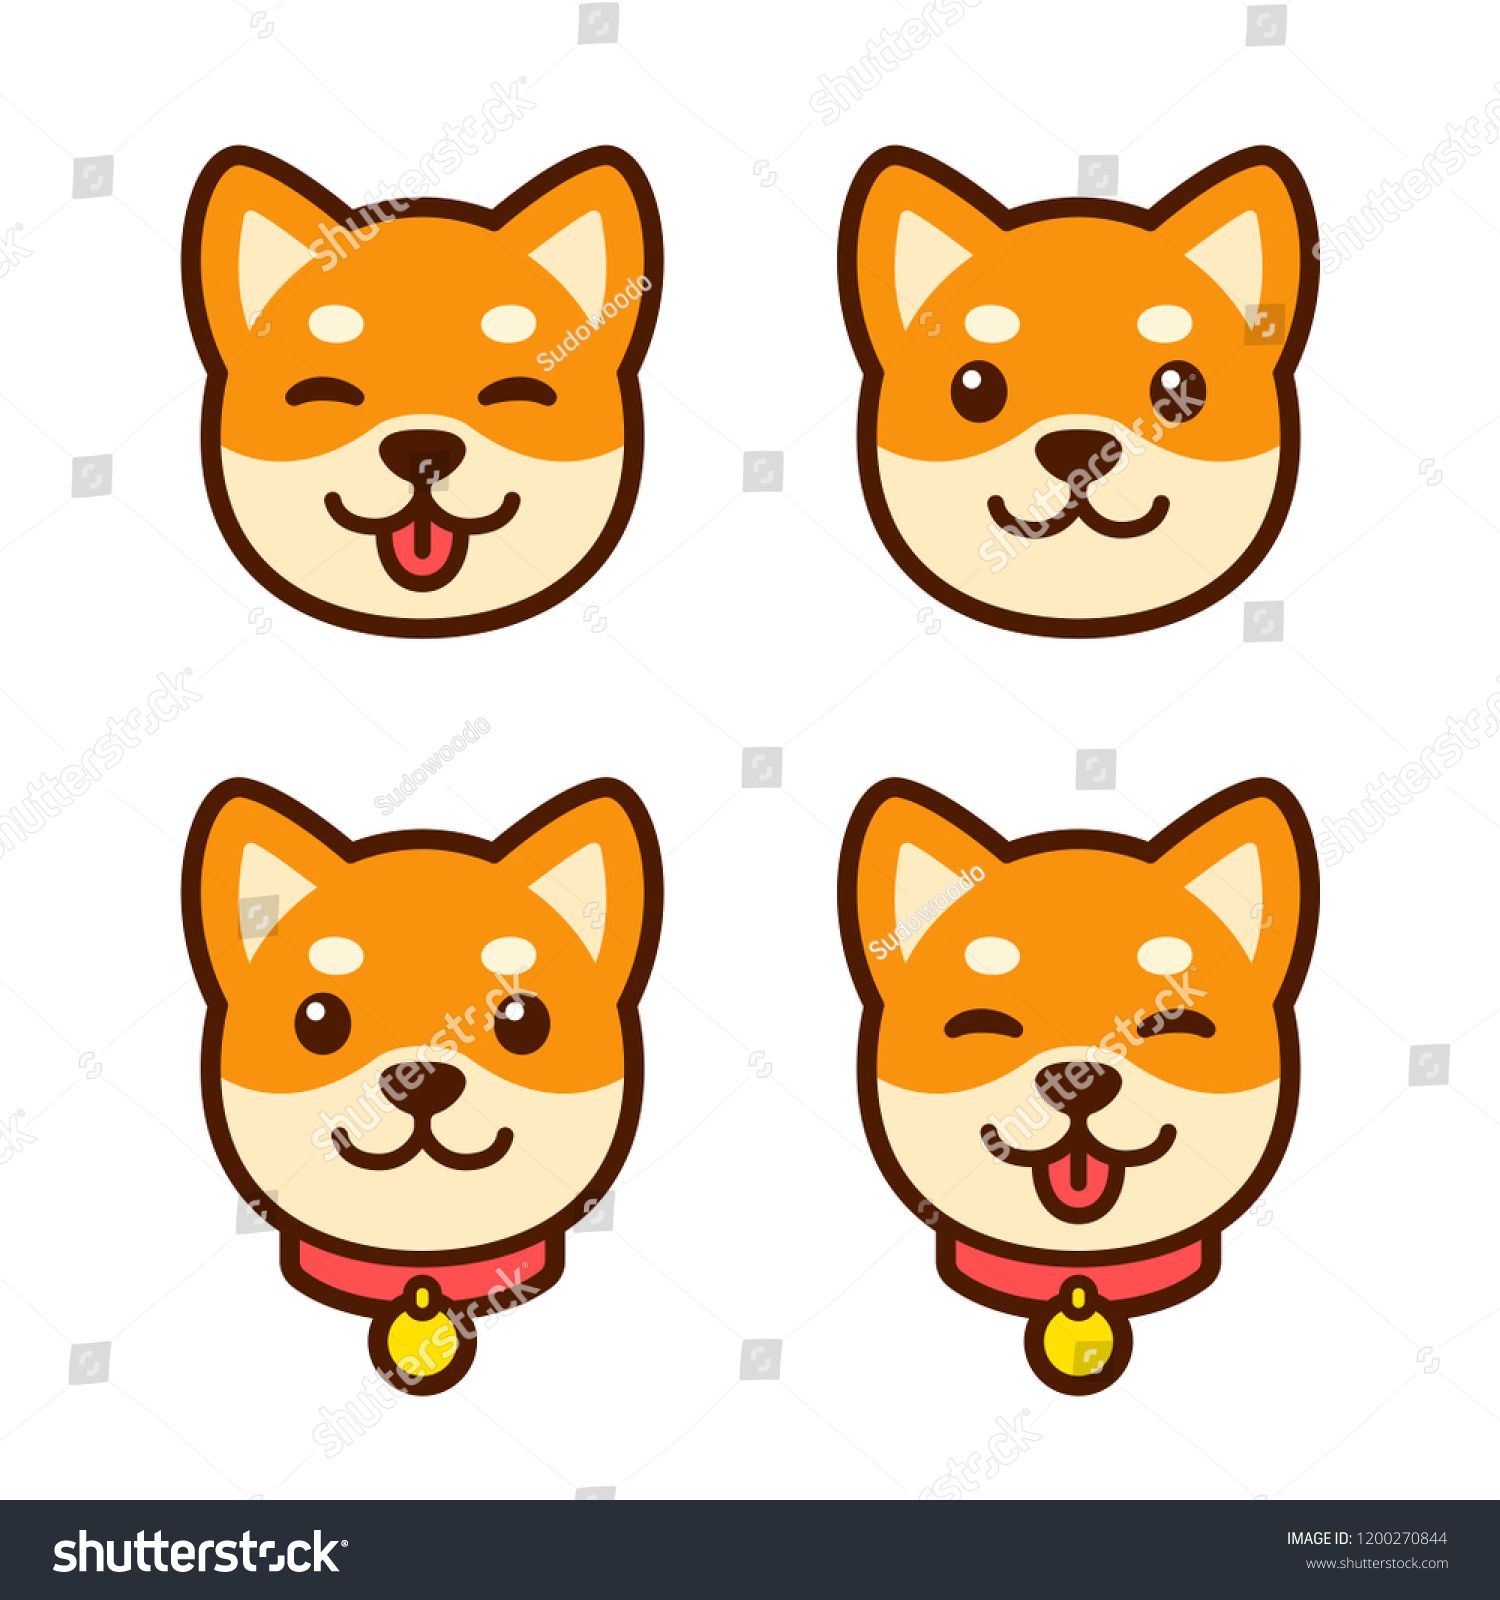 Cute Cartoon Shiba Inu Puppy Face Set For Icon Or Logo Happy Dog With Tongue Sticking Out Simple Vector Illustration Shiba Inu Puppy Shiba Inu Puppy Drawing